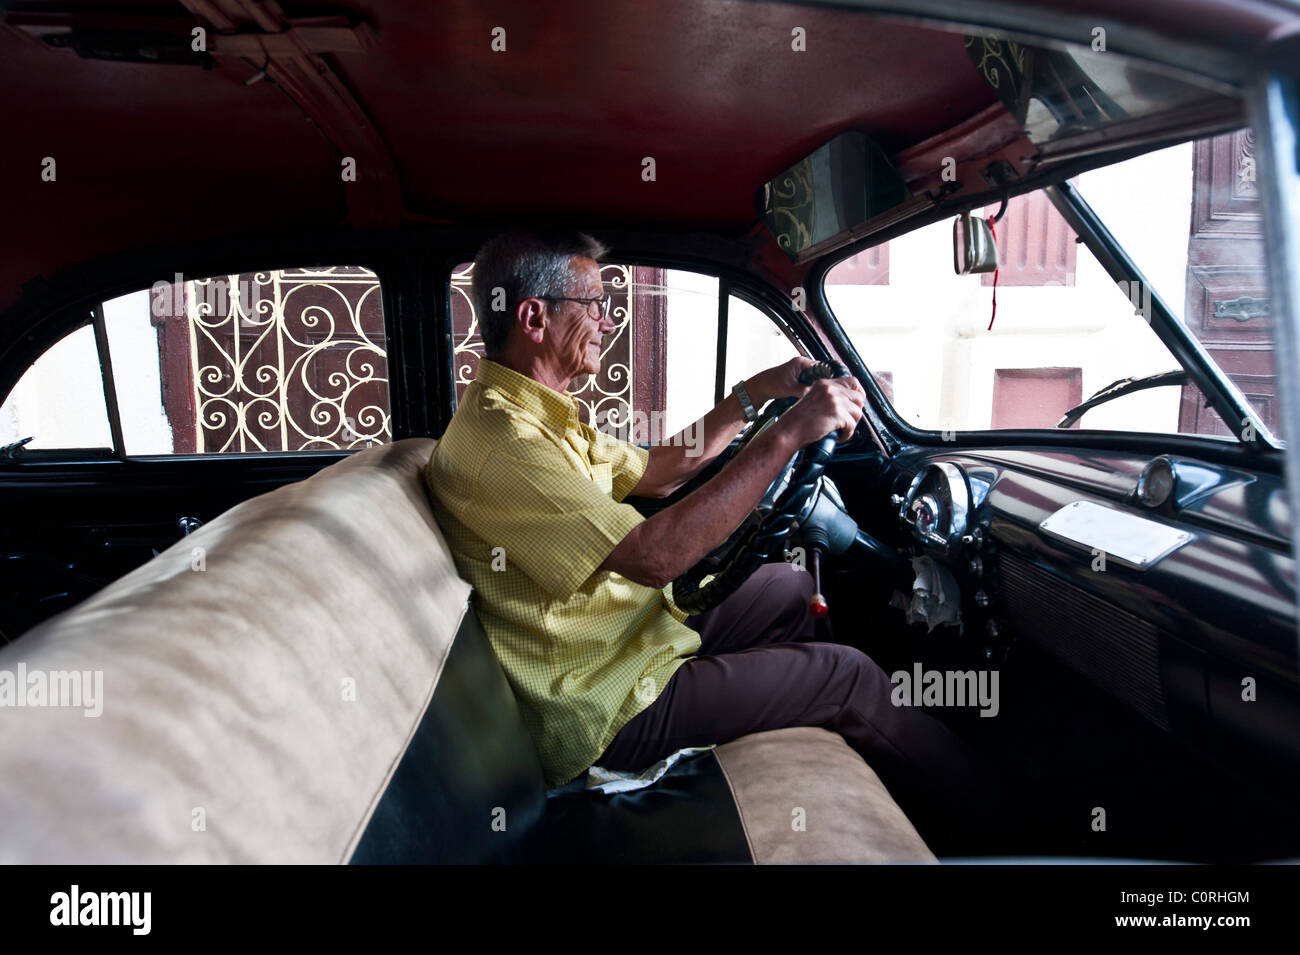 Man in classic american car, Street scene Trinidad central Cuba - Stock Image